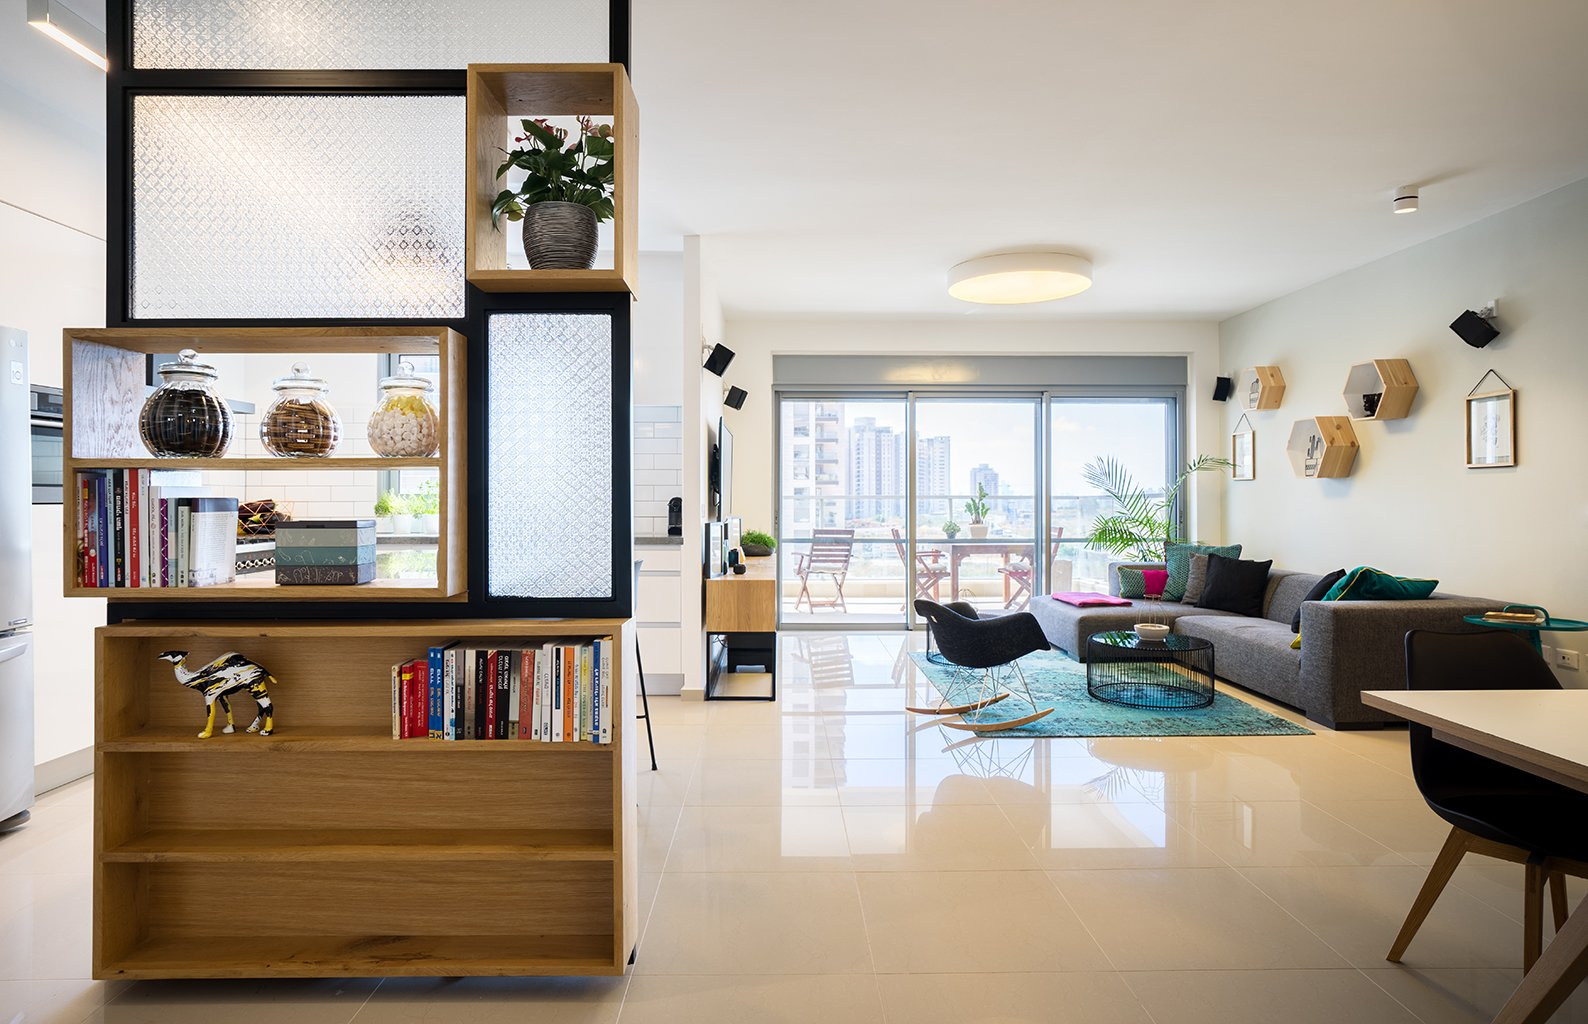 The most immediately striking feature of this 1,400-square-foot in a 21-floor high-rise is the shelving unit/room divider between the kitchen and living area. Tagged: Living Room and Sofa.  Photo 2 of 4 in A Riotous Makeover for a Generic  High-Rise Home